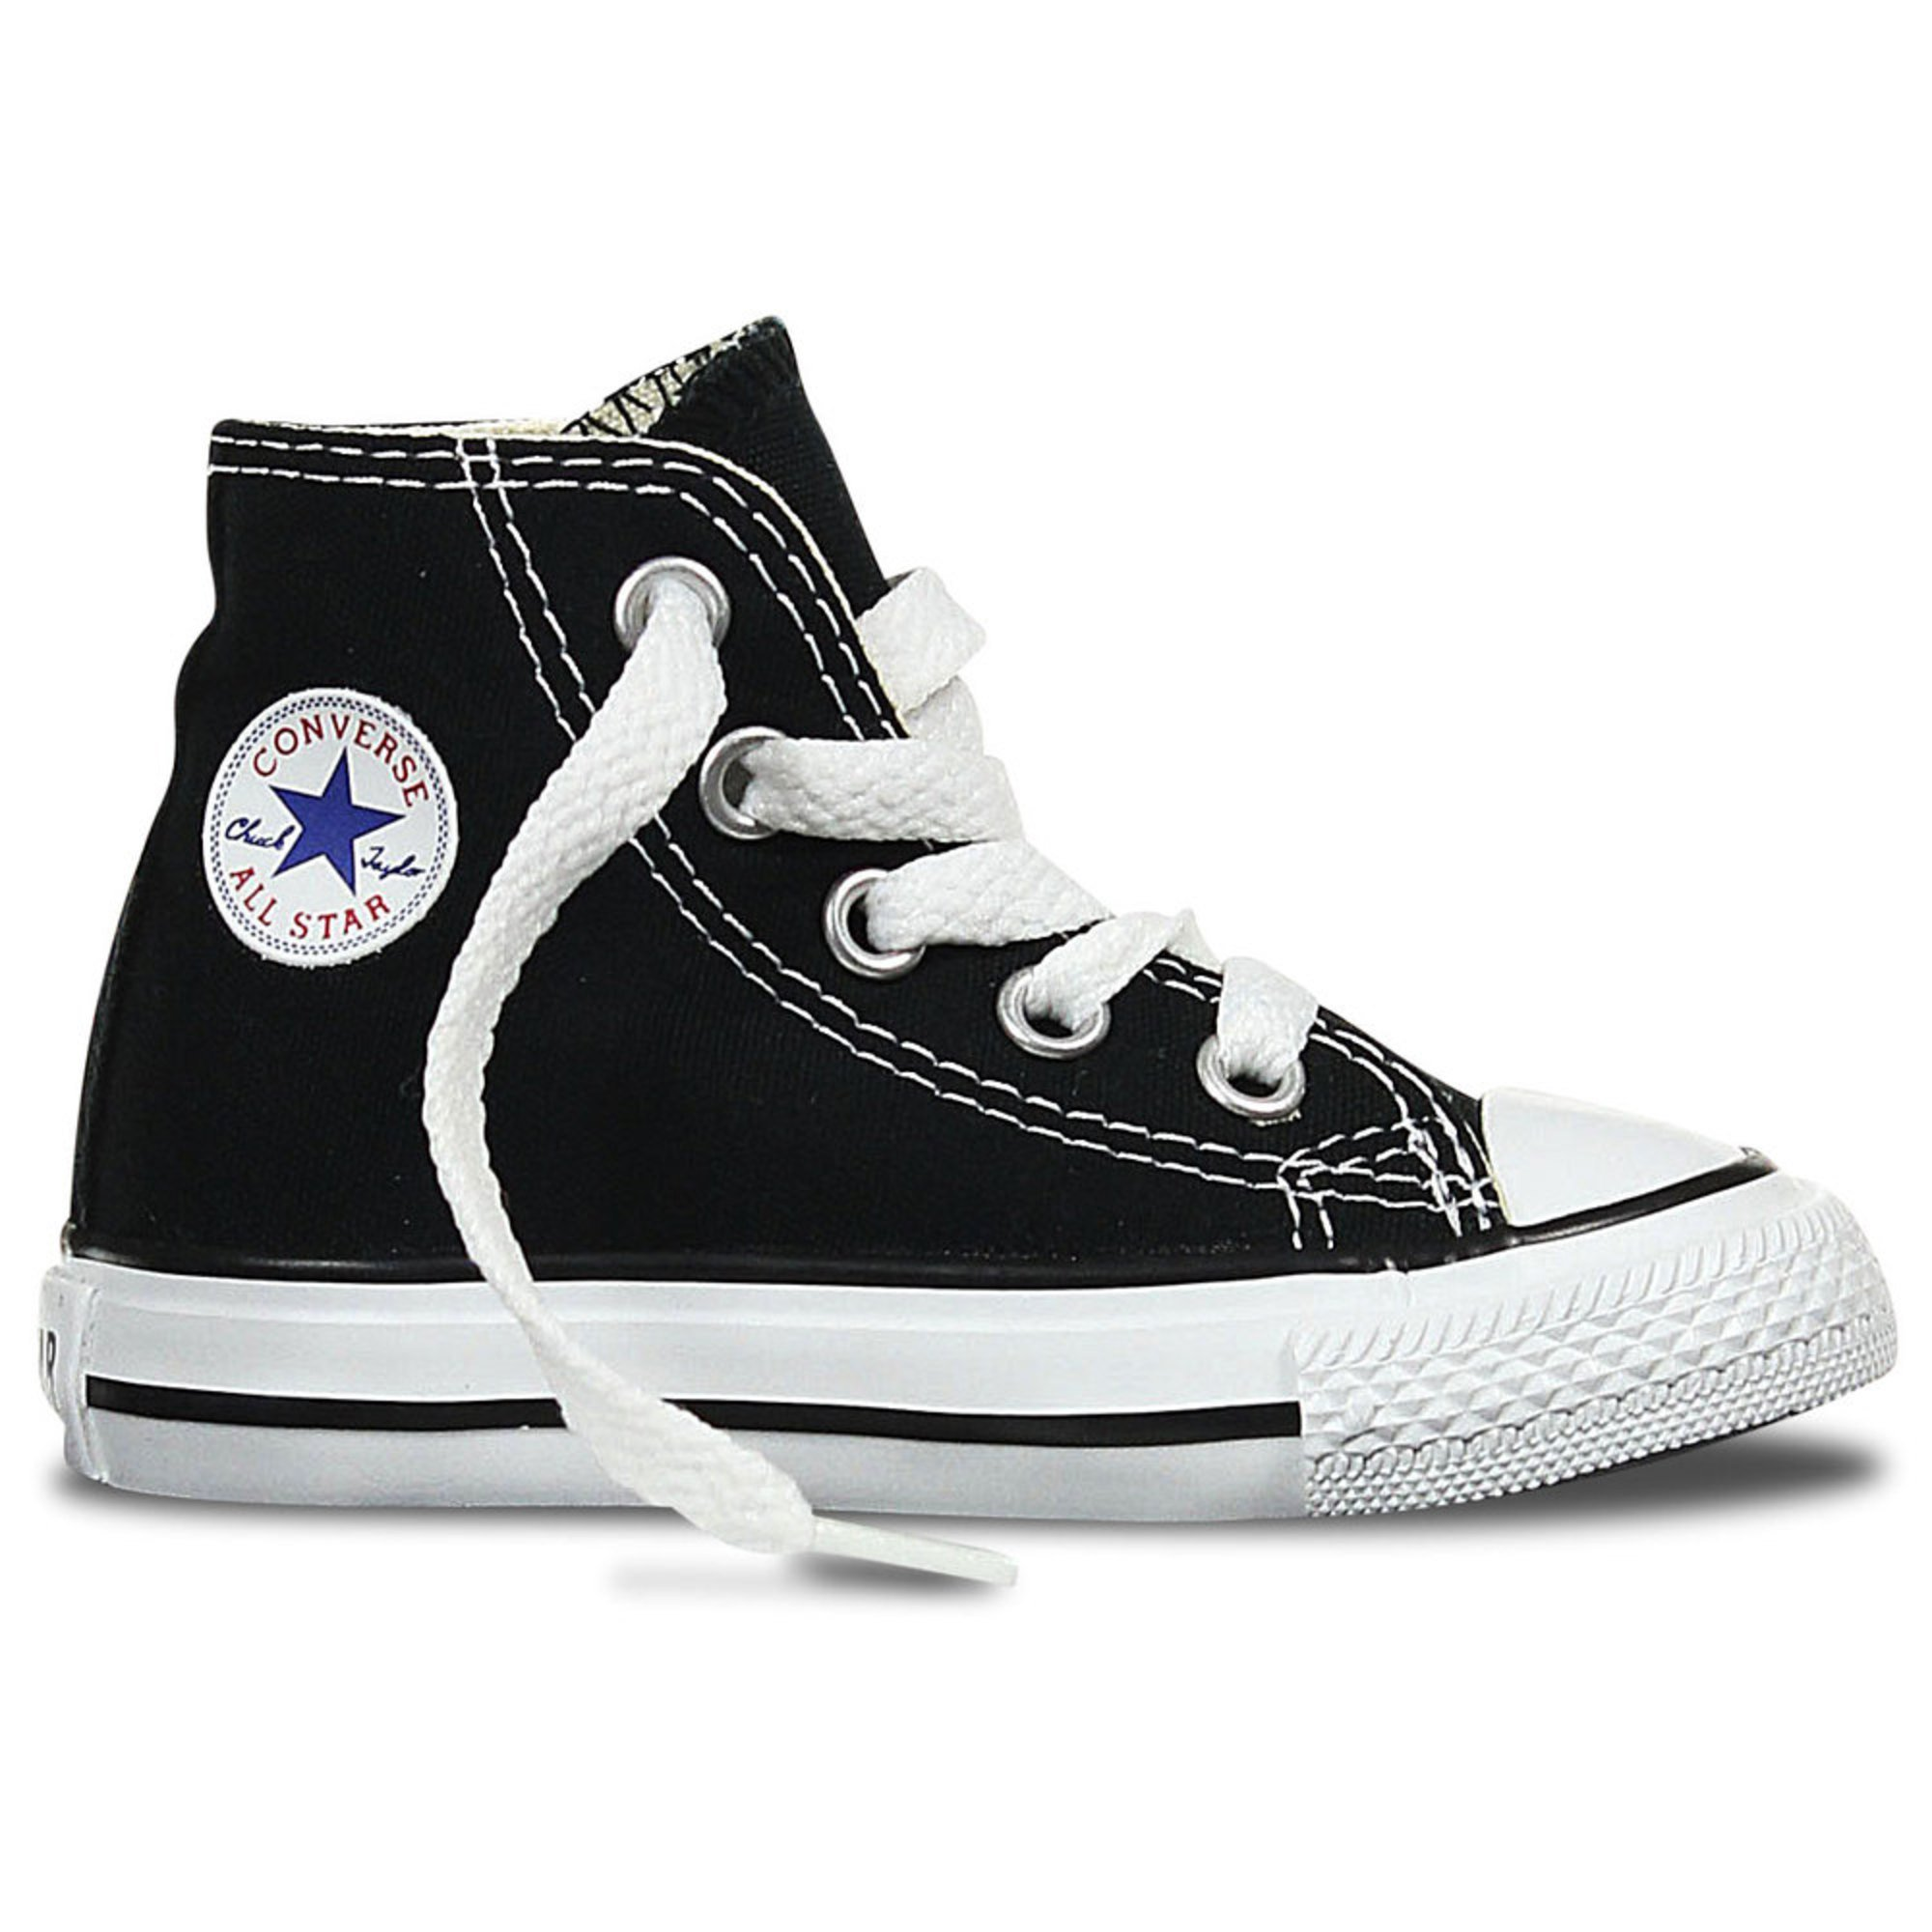 b3109c909be9 Converse. Converse Boys Chuck Taylor All Star Hi Top Basketball Shoe (Infant  Toddler)